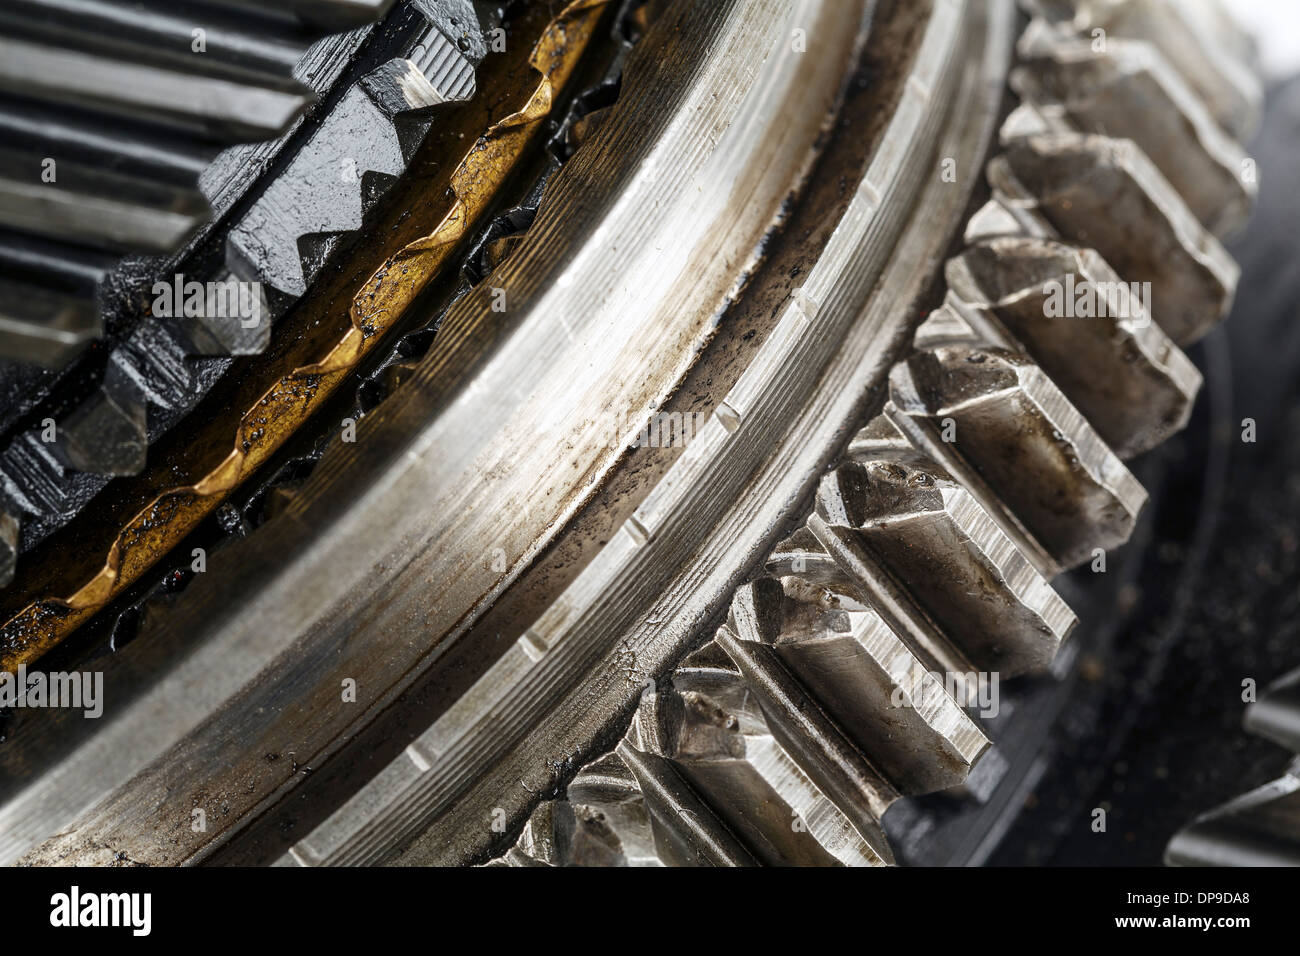 Shown in close up the mainshaft of the gearbox - Stock Image